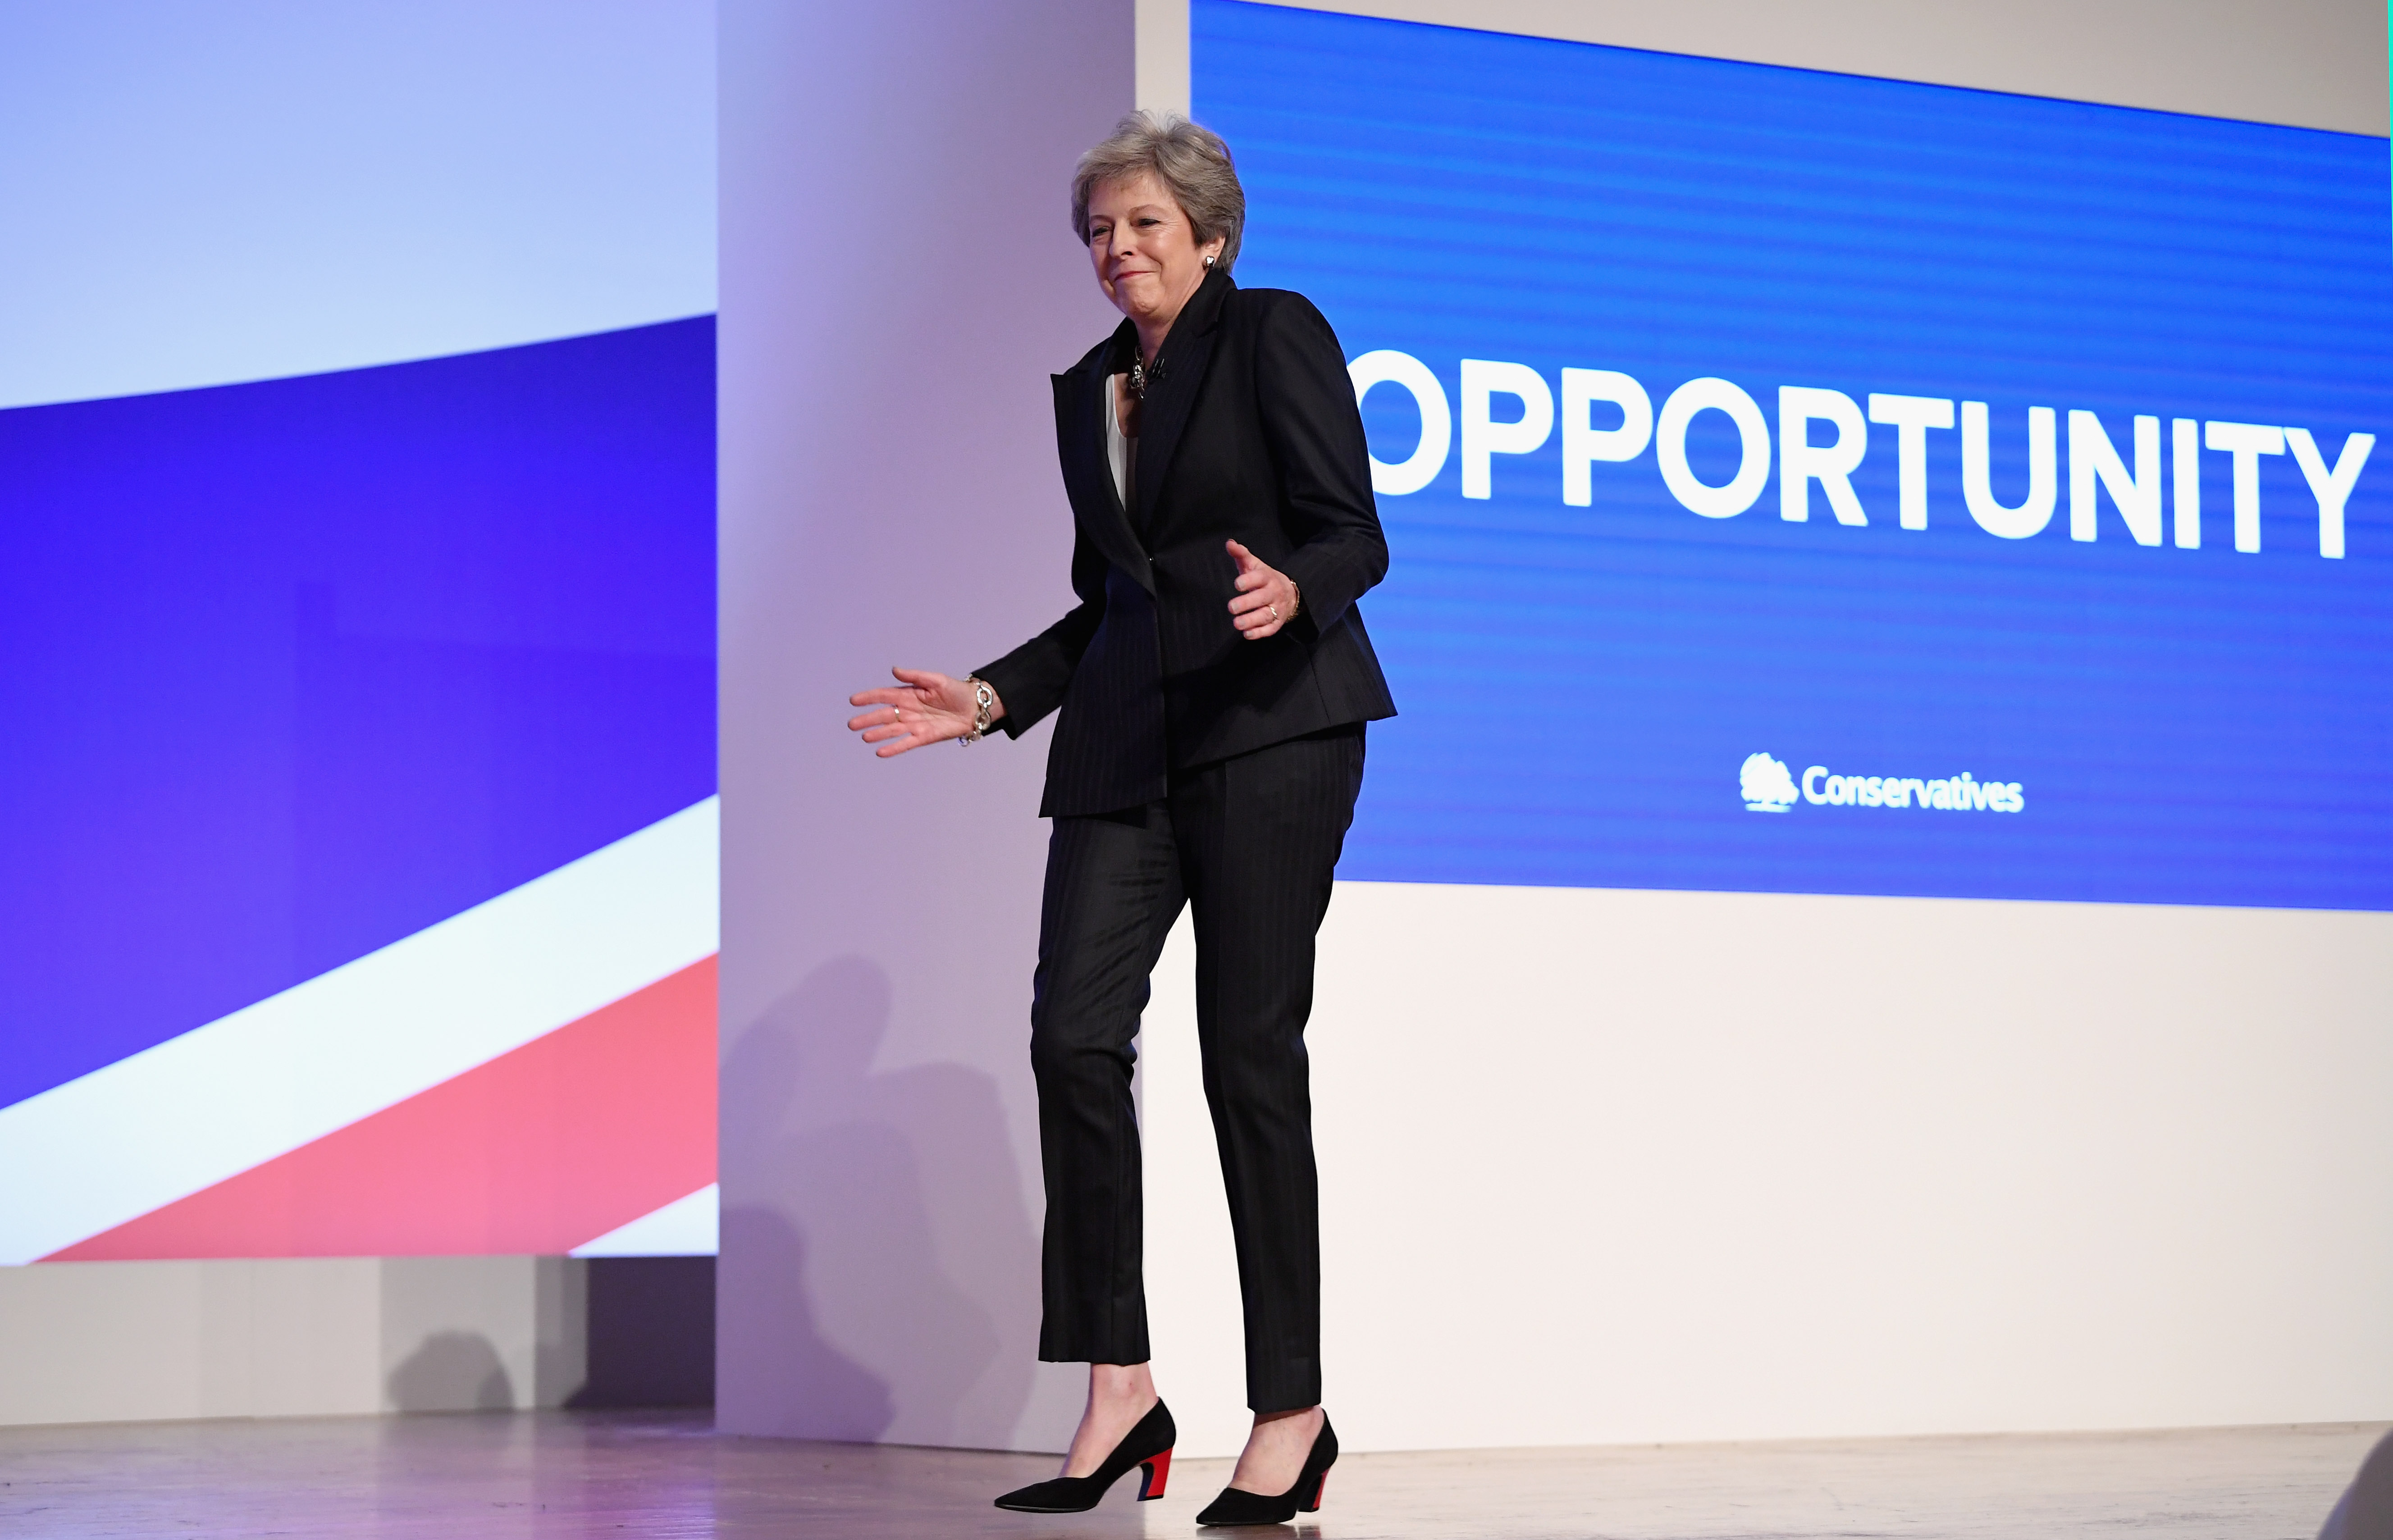 "BIRMINGHAM, ENGLAND - OCTOBER 03:  British Prime Minister Theresa May dances as she walks out onto the stage to deliver her leader's speech during the final day of the Conservative Party Conference at The International Convention Centre on October 3, 2018 in Birmingham, England. Theresa May delivered her leader's speech to the 2018 Conservative Party Conference today. Appealing to the ""decent, moderate and patriotic"", she stated that the Conservative Party is for everyone who is willing to ""work hard and do their best"". This year's conference took place six months before the UK is due to leave the European Union, with divisions on how Brexit should be implemented apparent throughout.  (Photo by Jeff J Mitchell/Getty Images)"